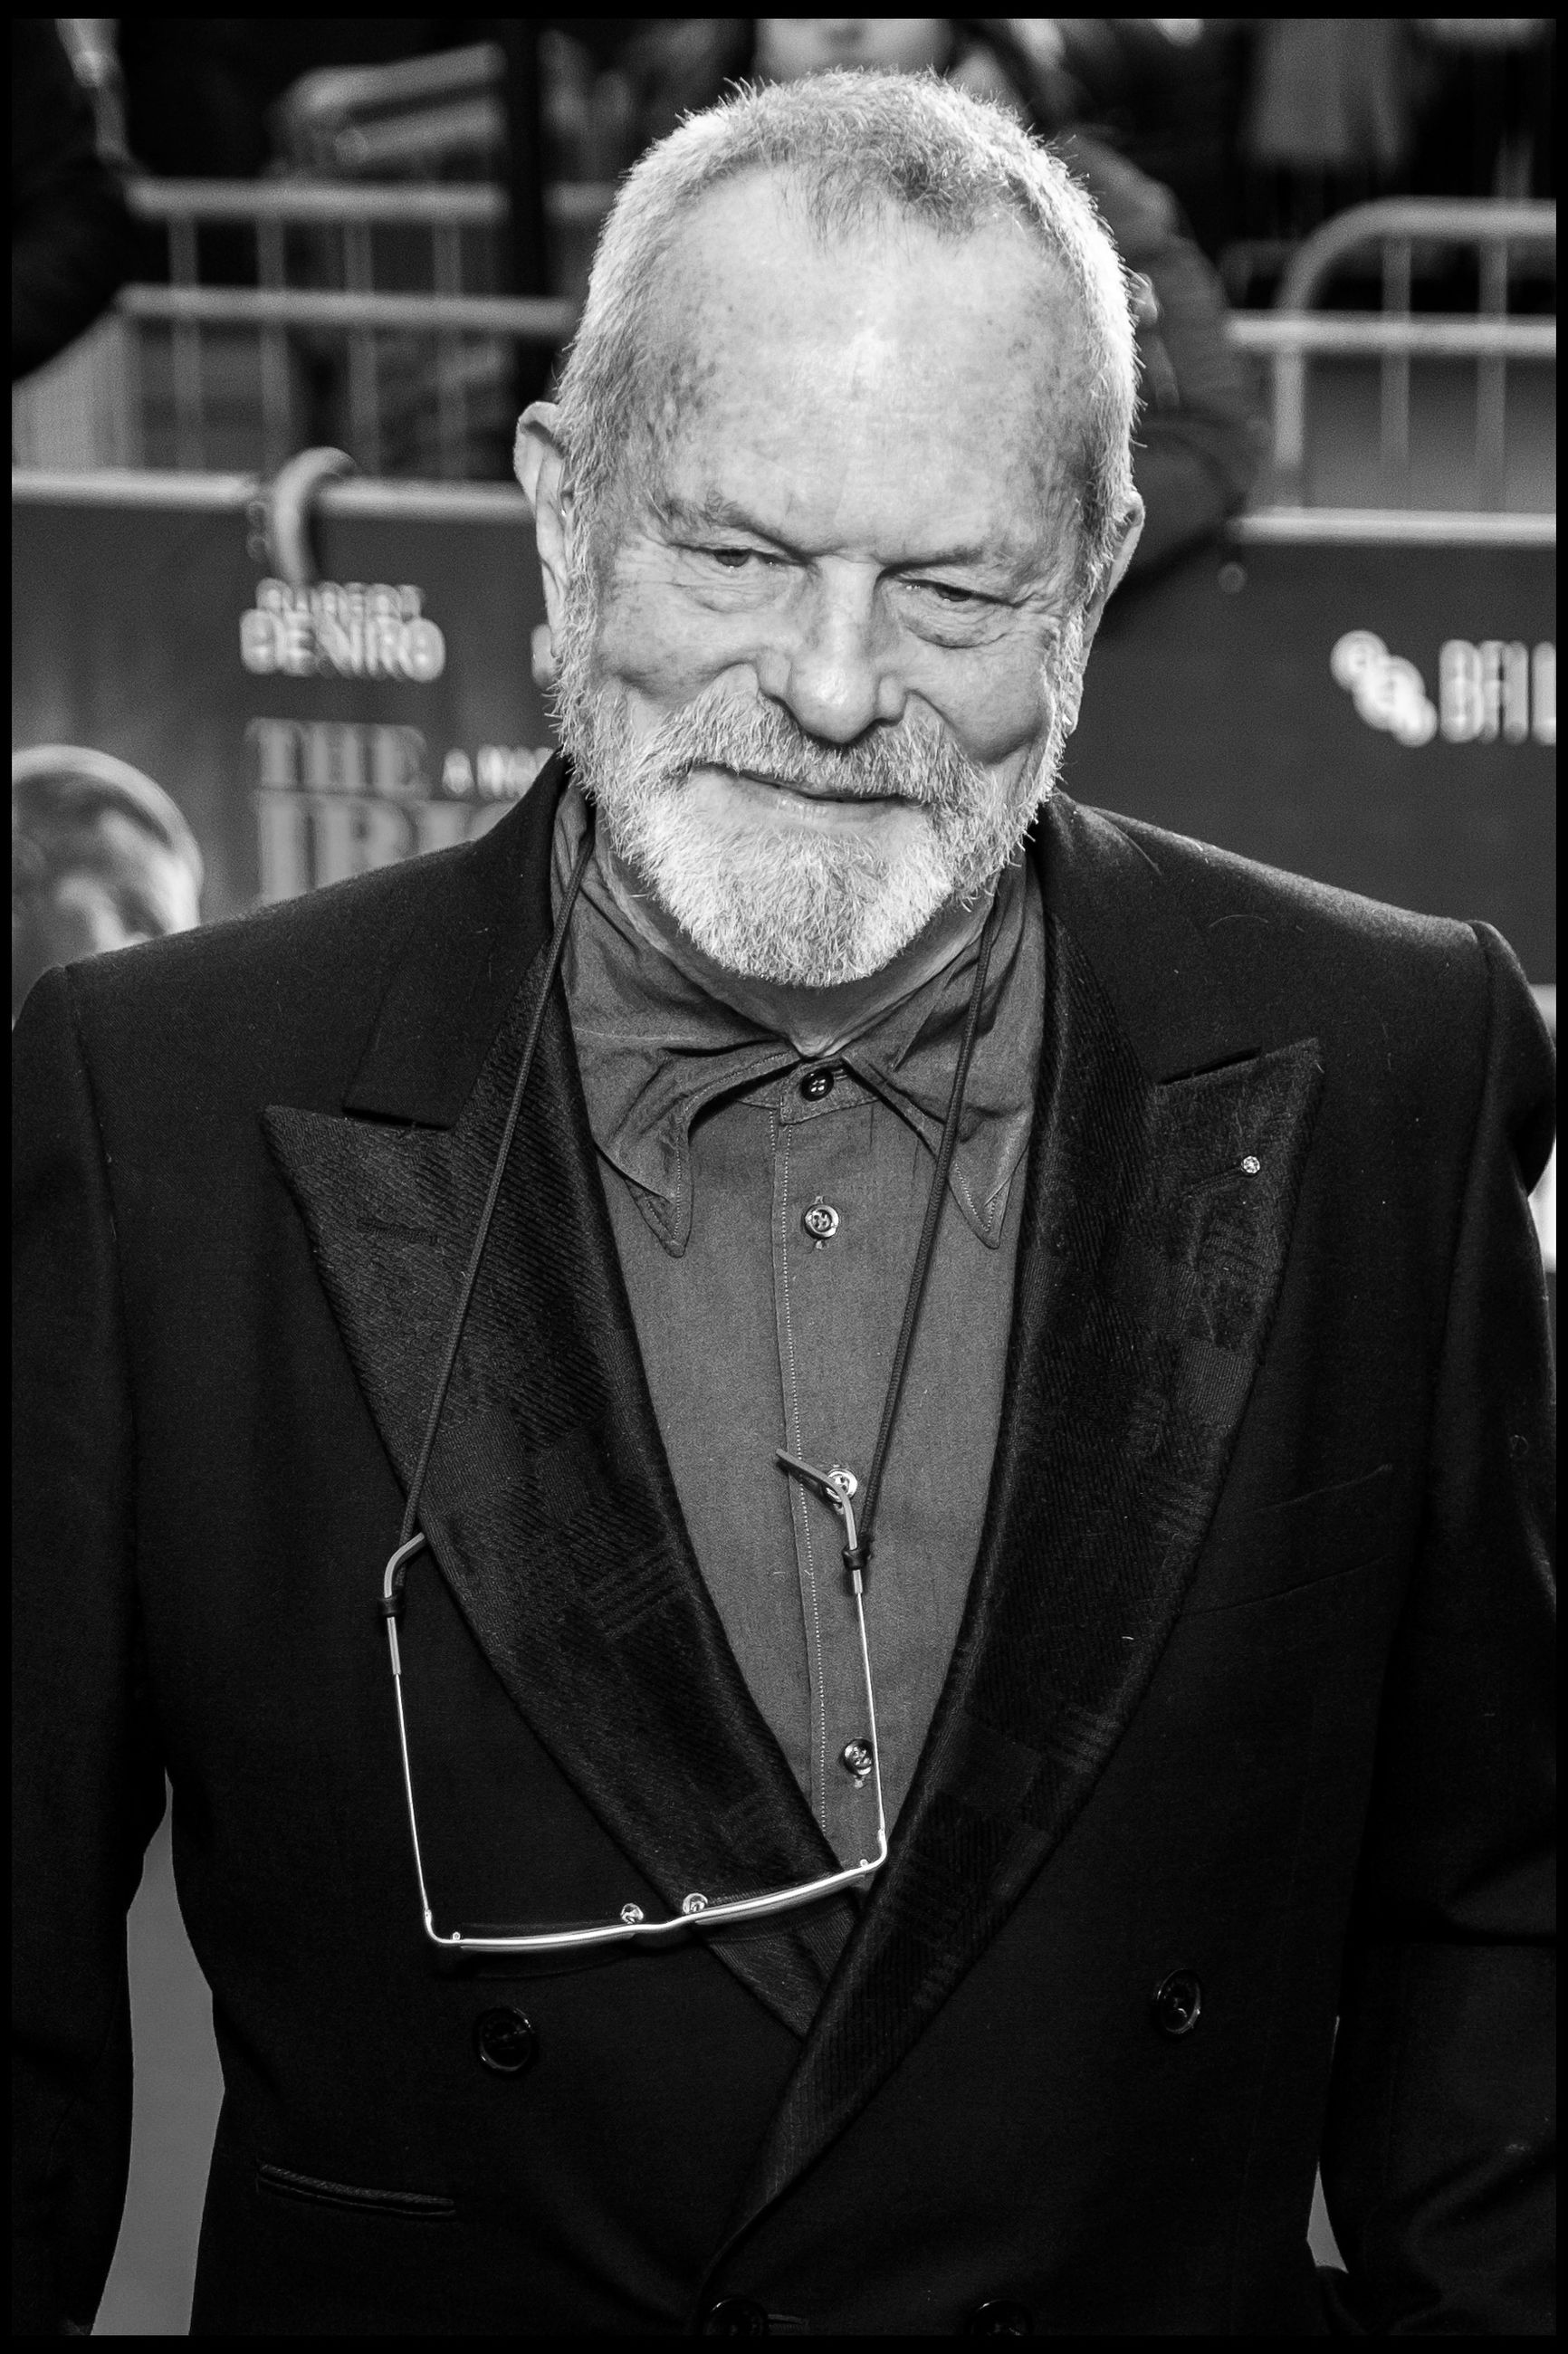 one person, real people, front view, senior adult, lifestyles, waist up, men, adult, senior men, beard, facial hair, jacket, leisure activity, males, standing, clothing, focus on foreground, casual clothing, happiness